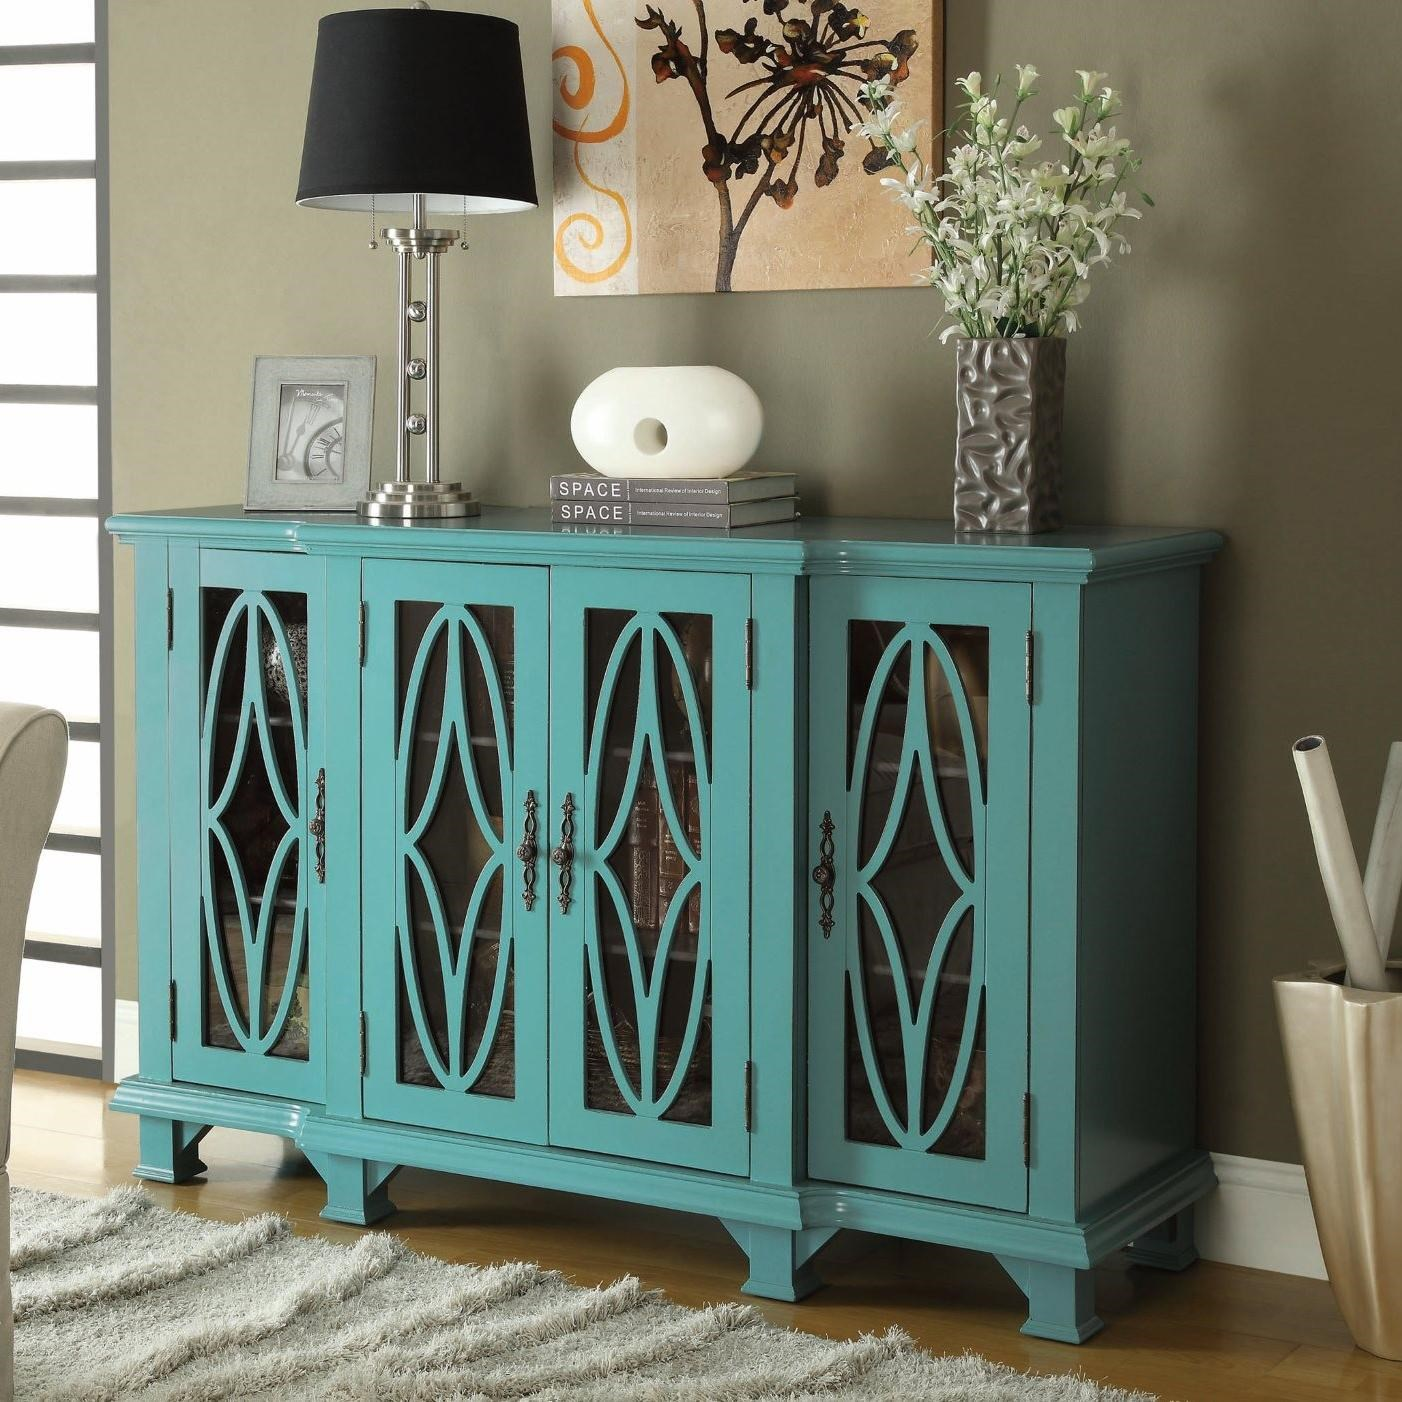 Coaster Accent Cabinets Large Teal Cabinet With 4 Glass Doors